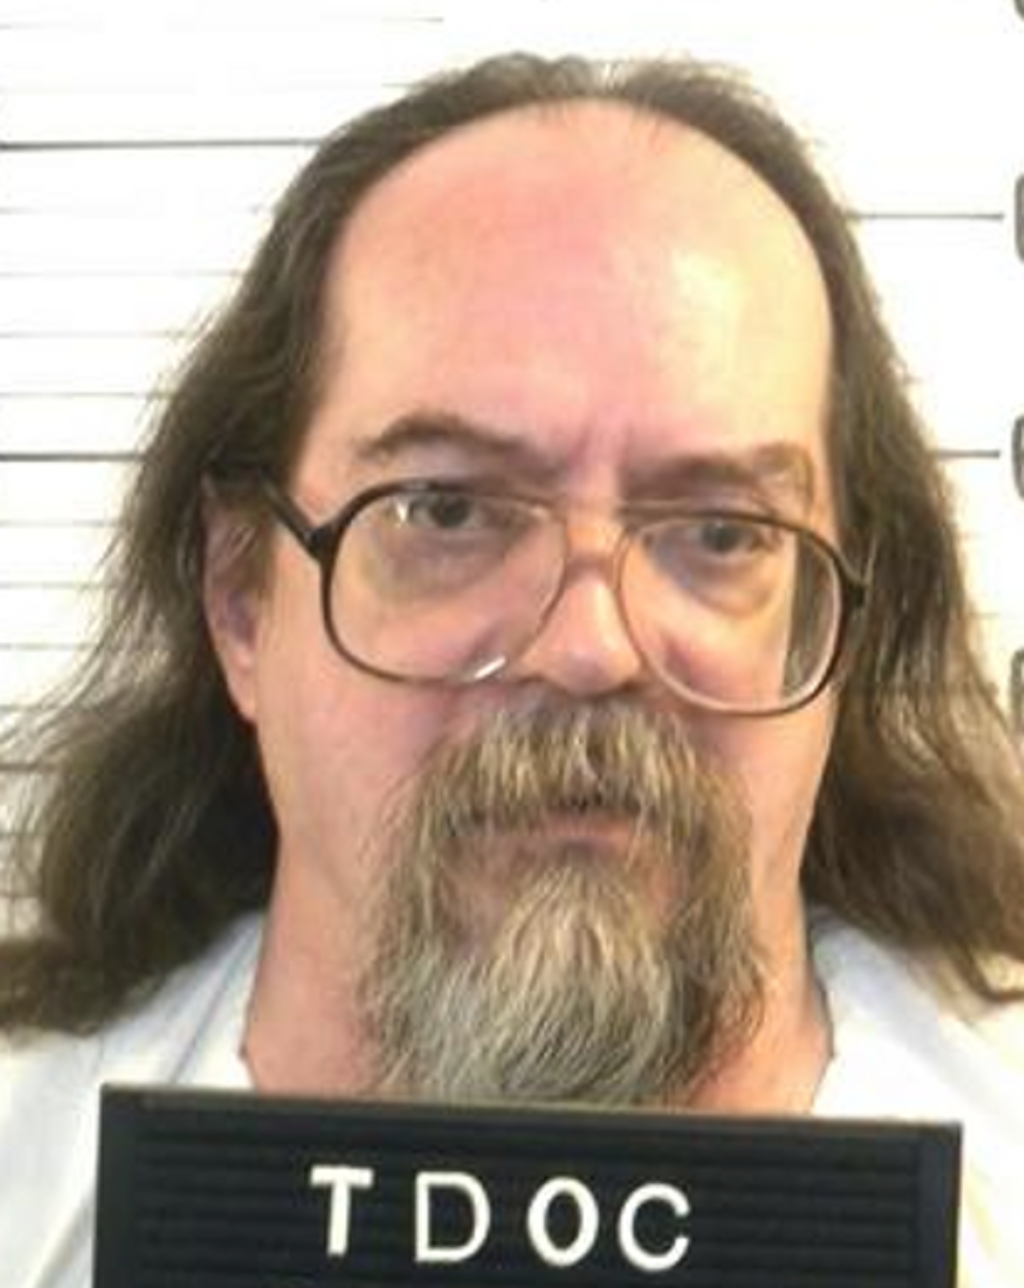 Tennessee Executes Billy Ray Irick in First Execution Since 2009